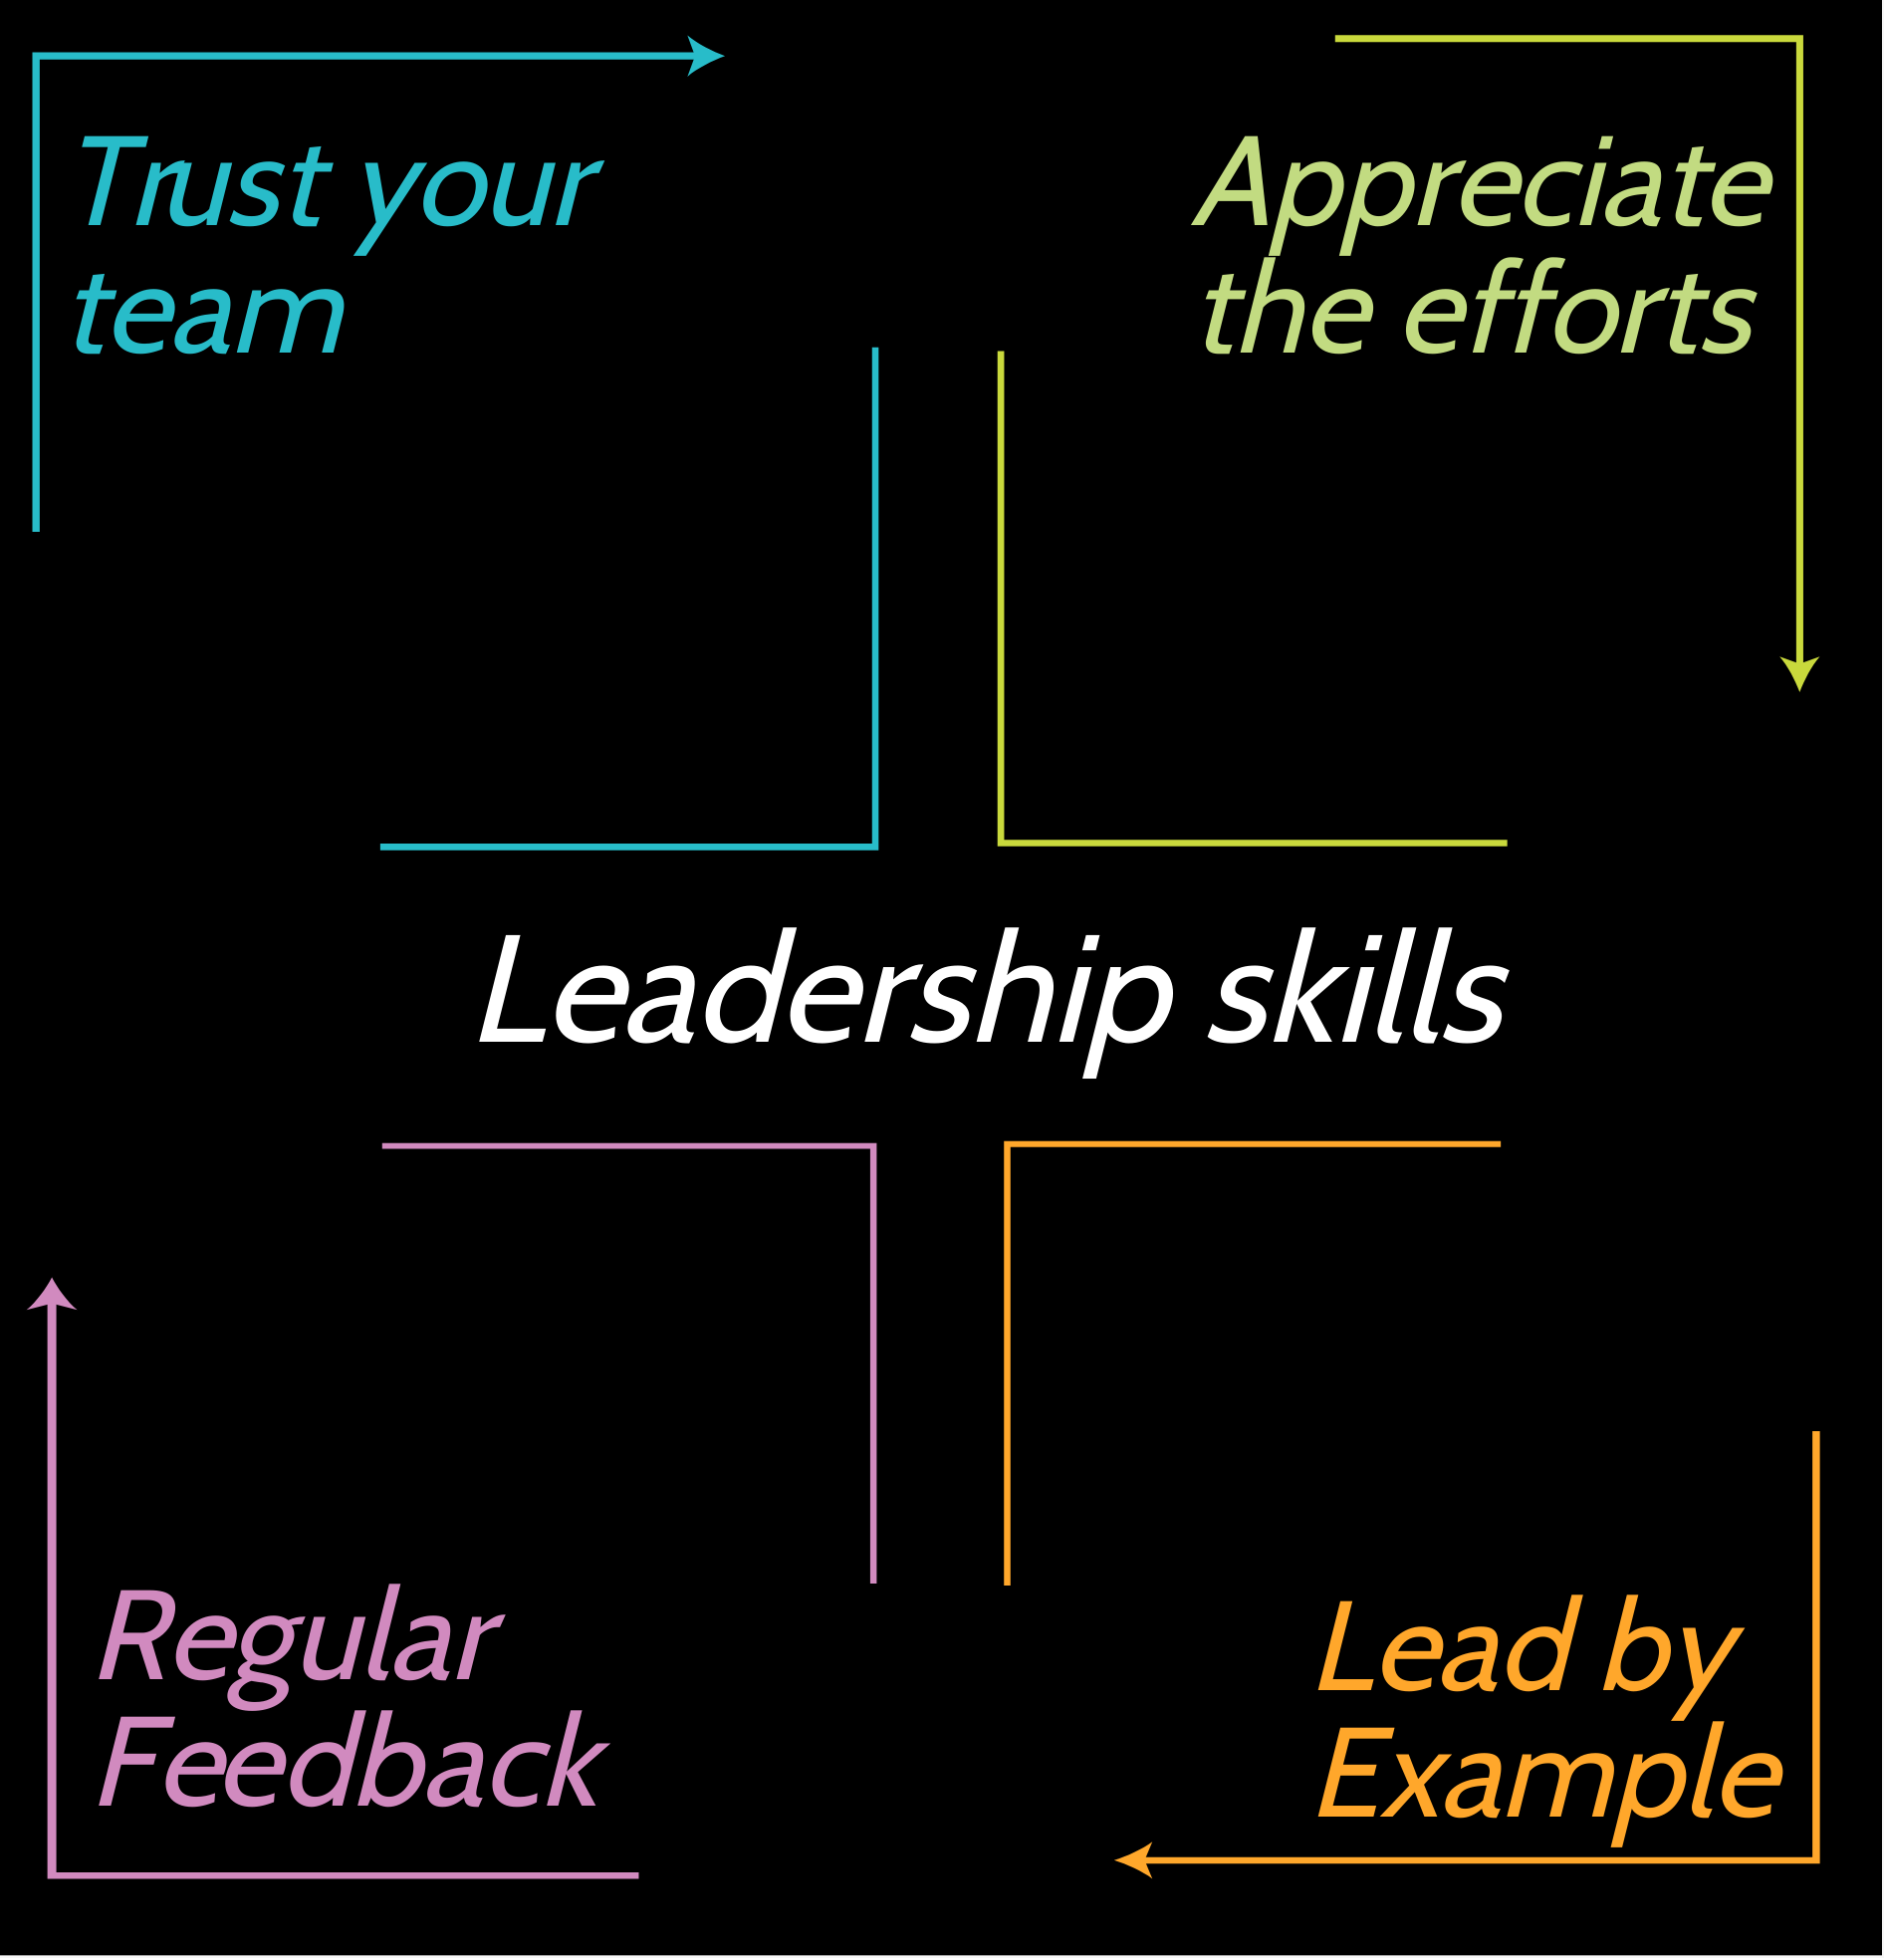 Important Leaderships skills to successfully manage a team